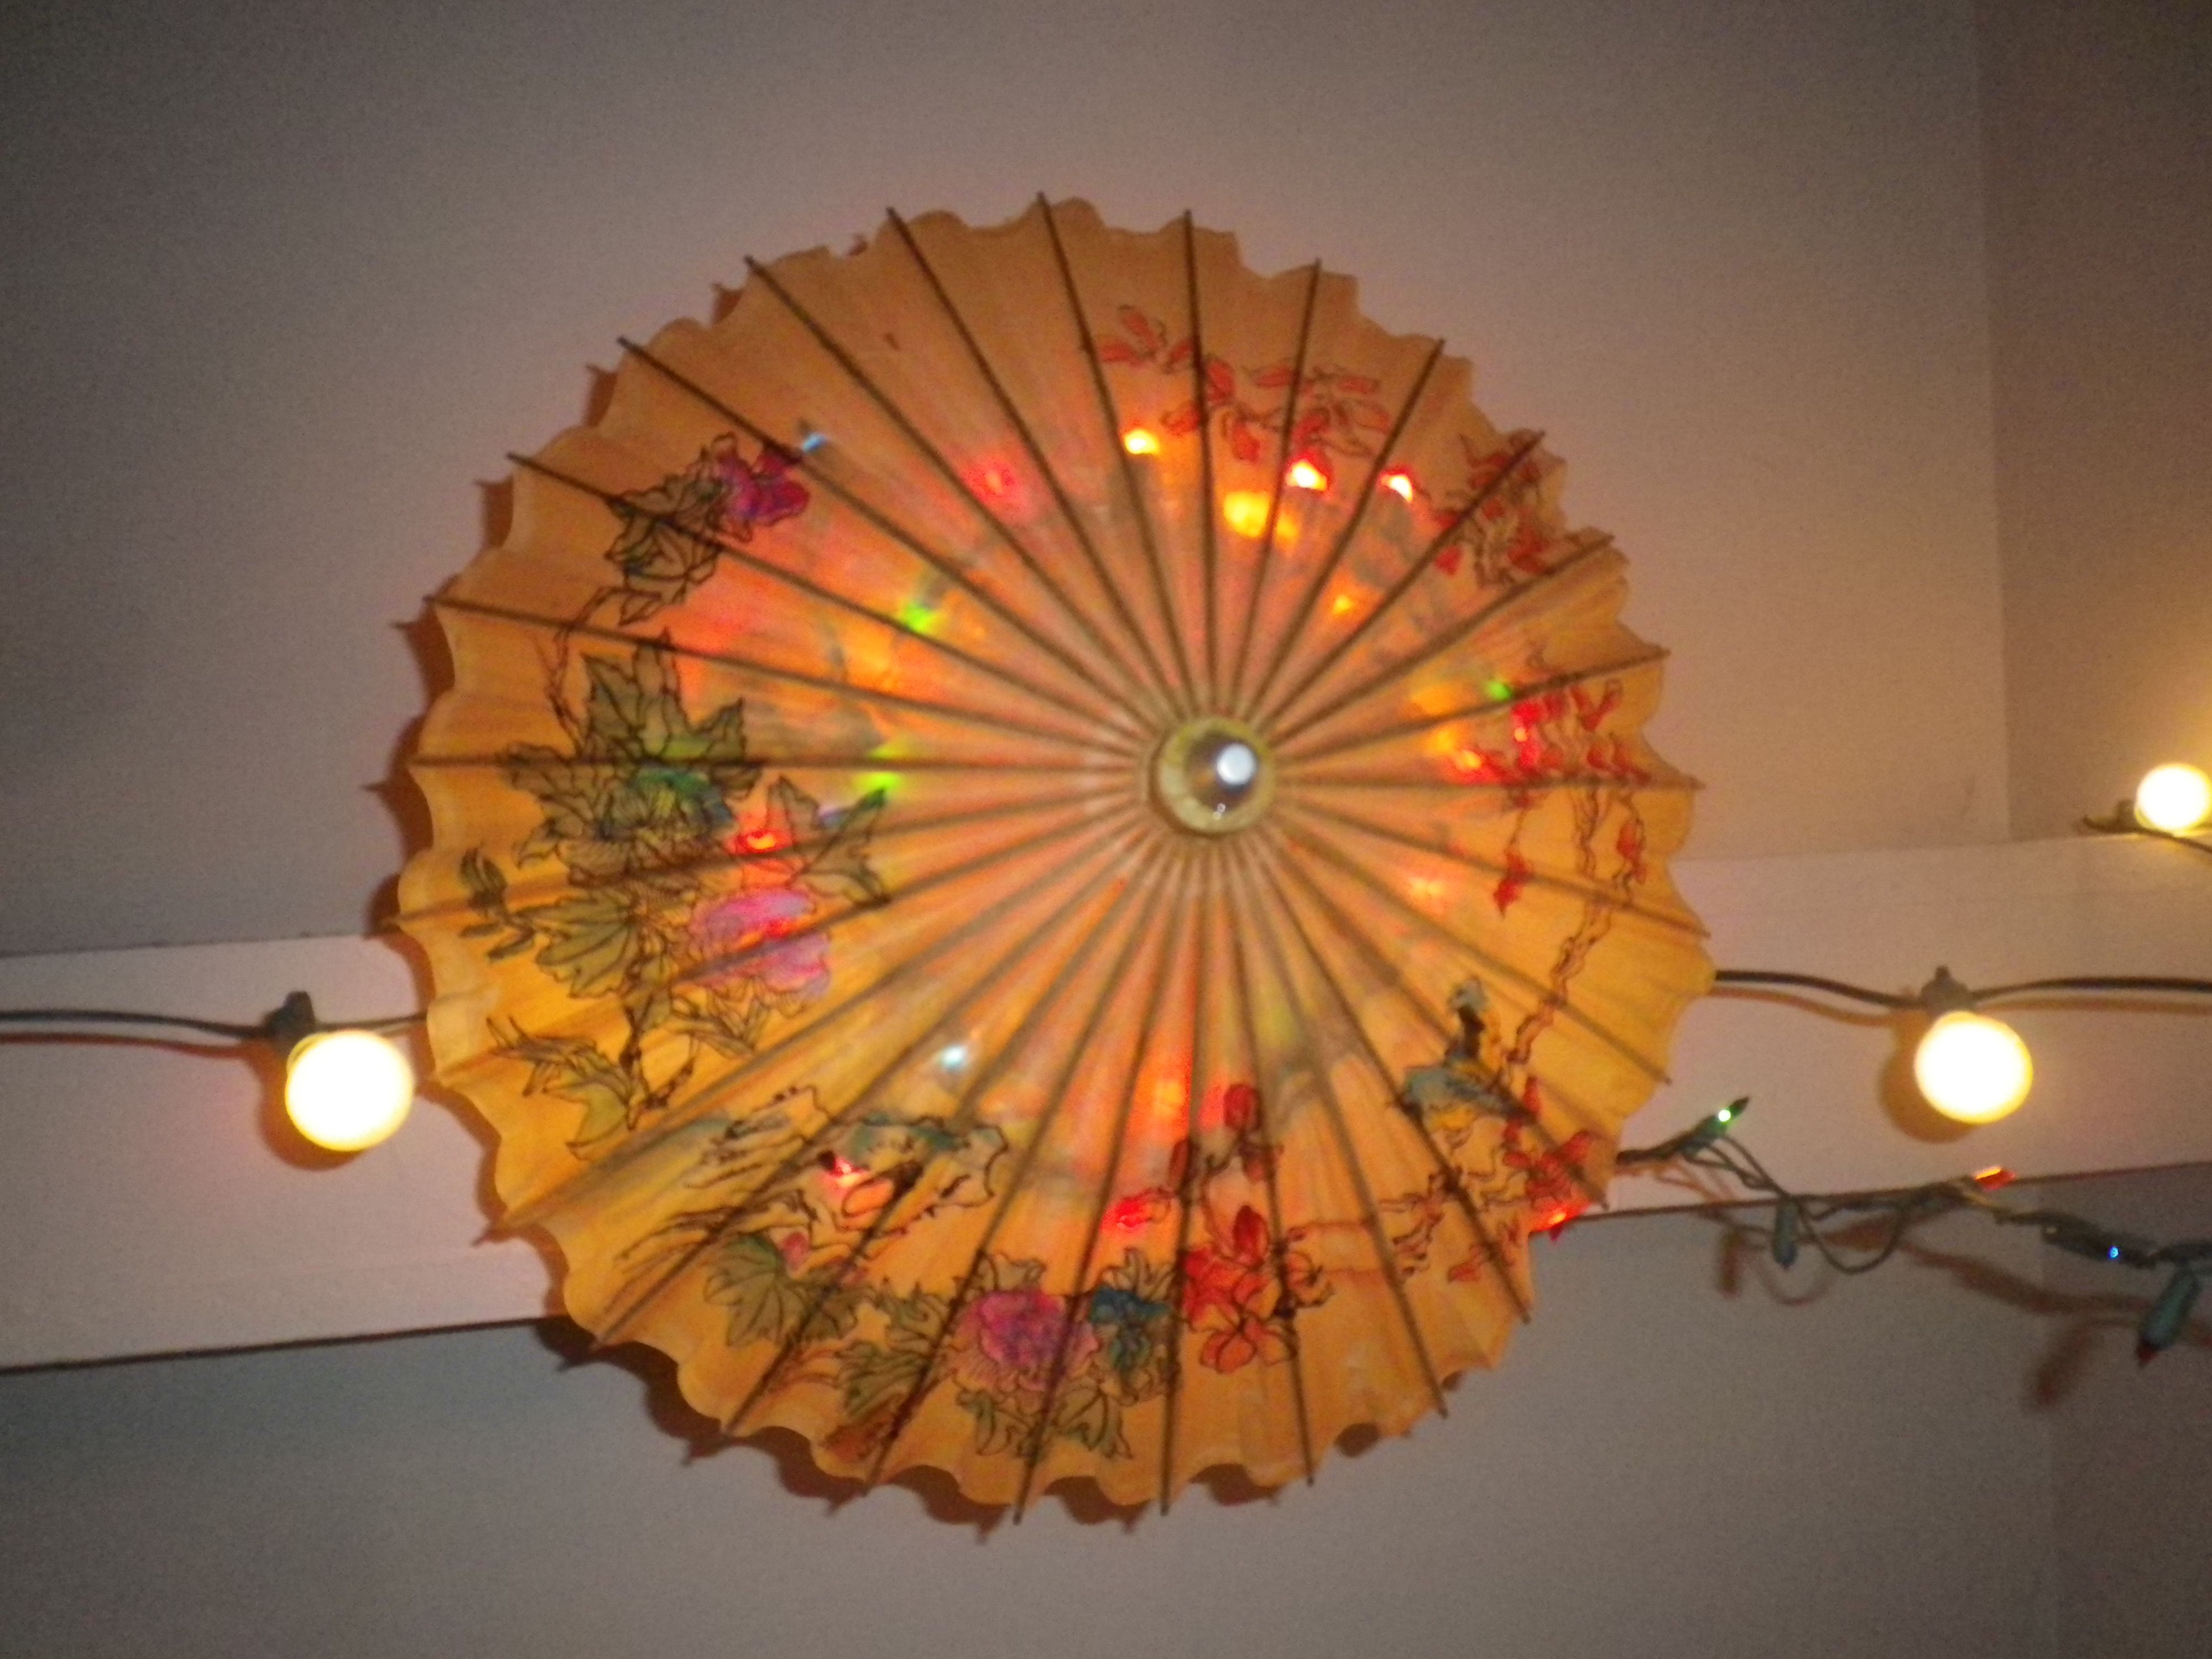 Japanese parasol light bamboo home decor lighting for Home decor made from recycled materials